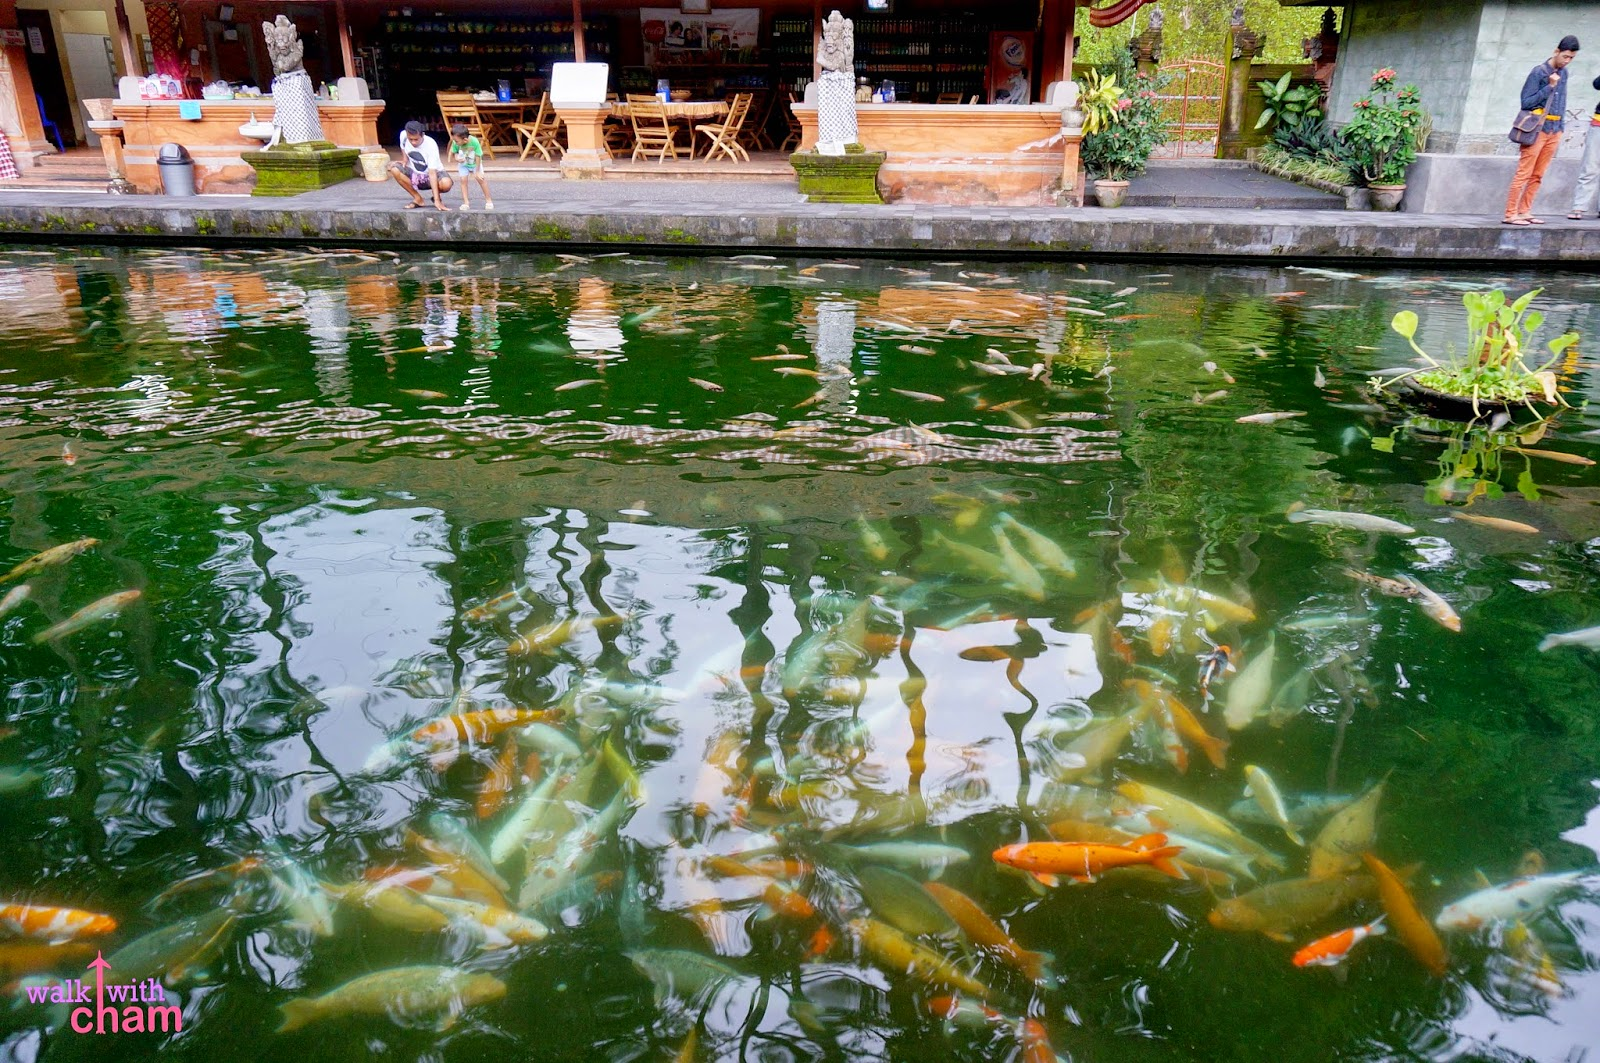 Walk with cham tirta empul temple bali indonesia for Koi pool opening times